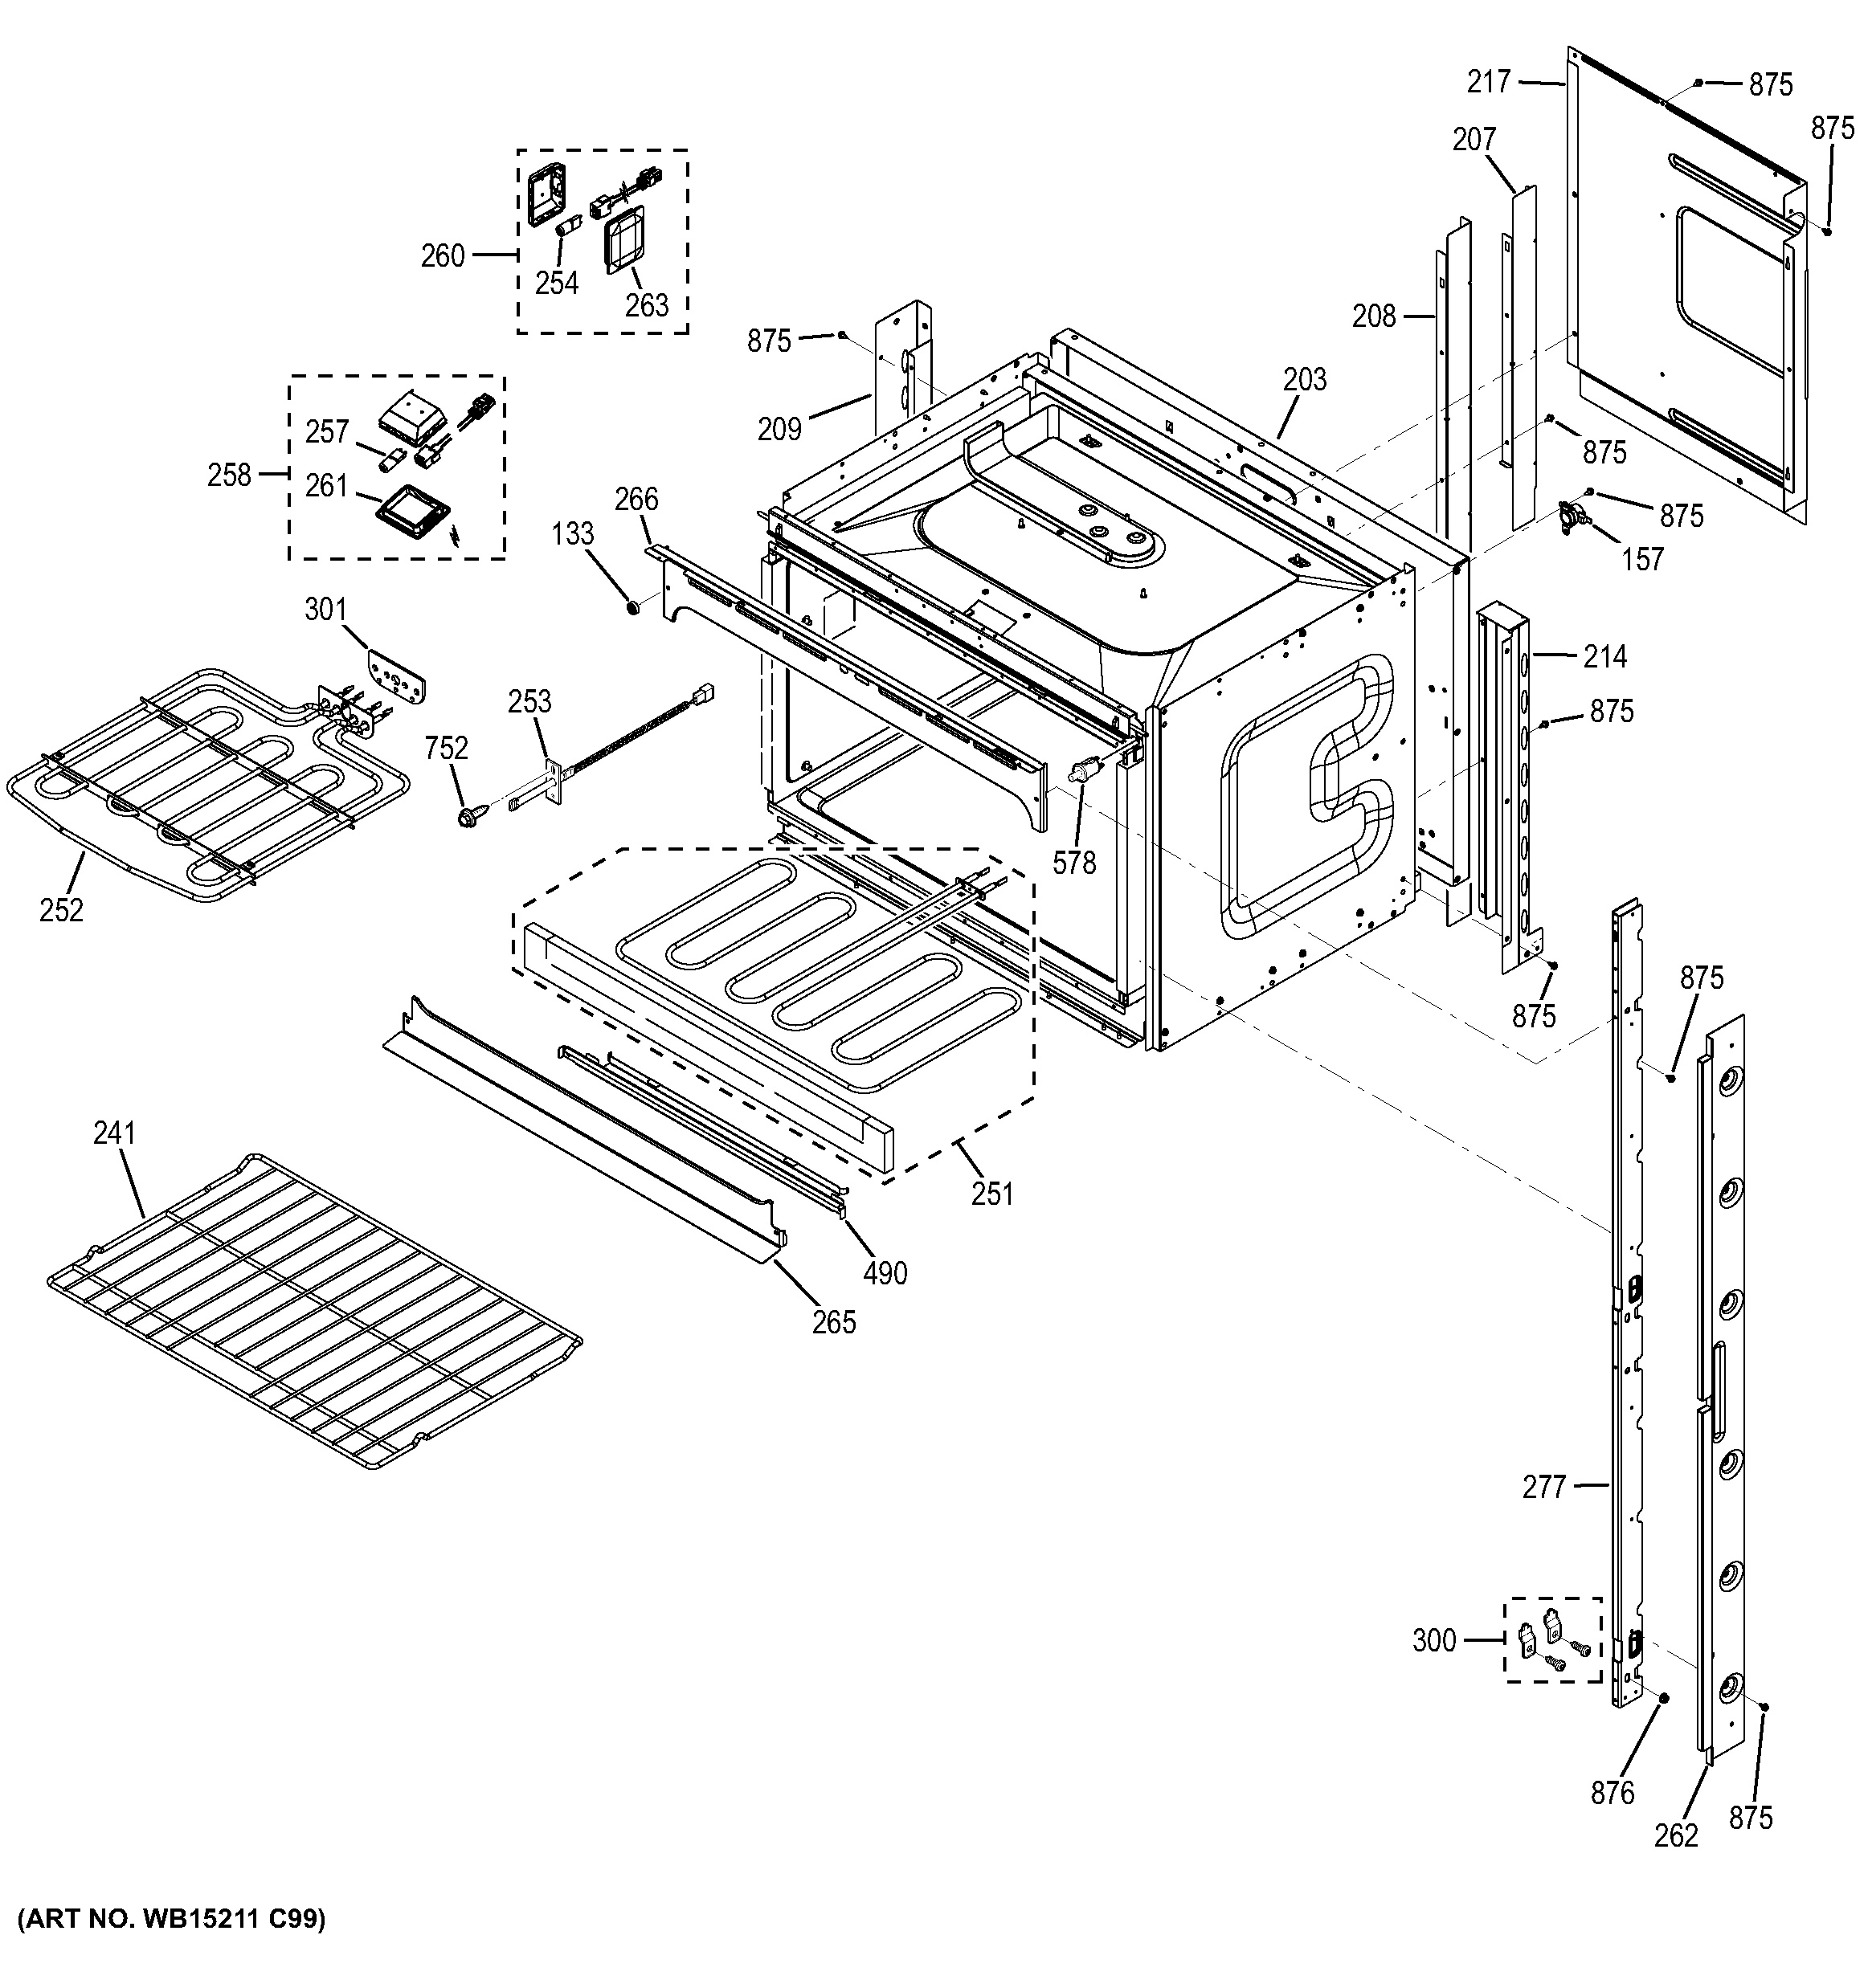 Assembly View For Upper Oven